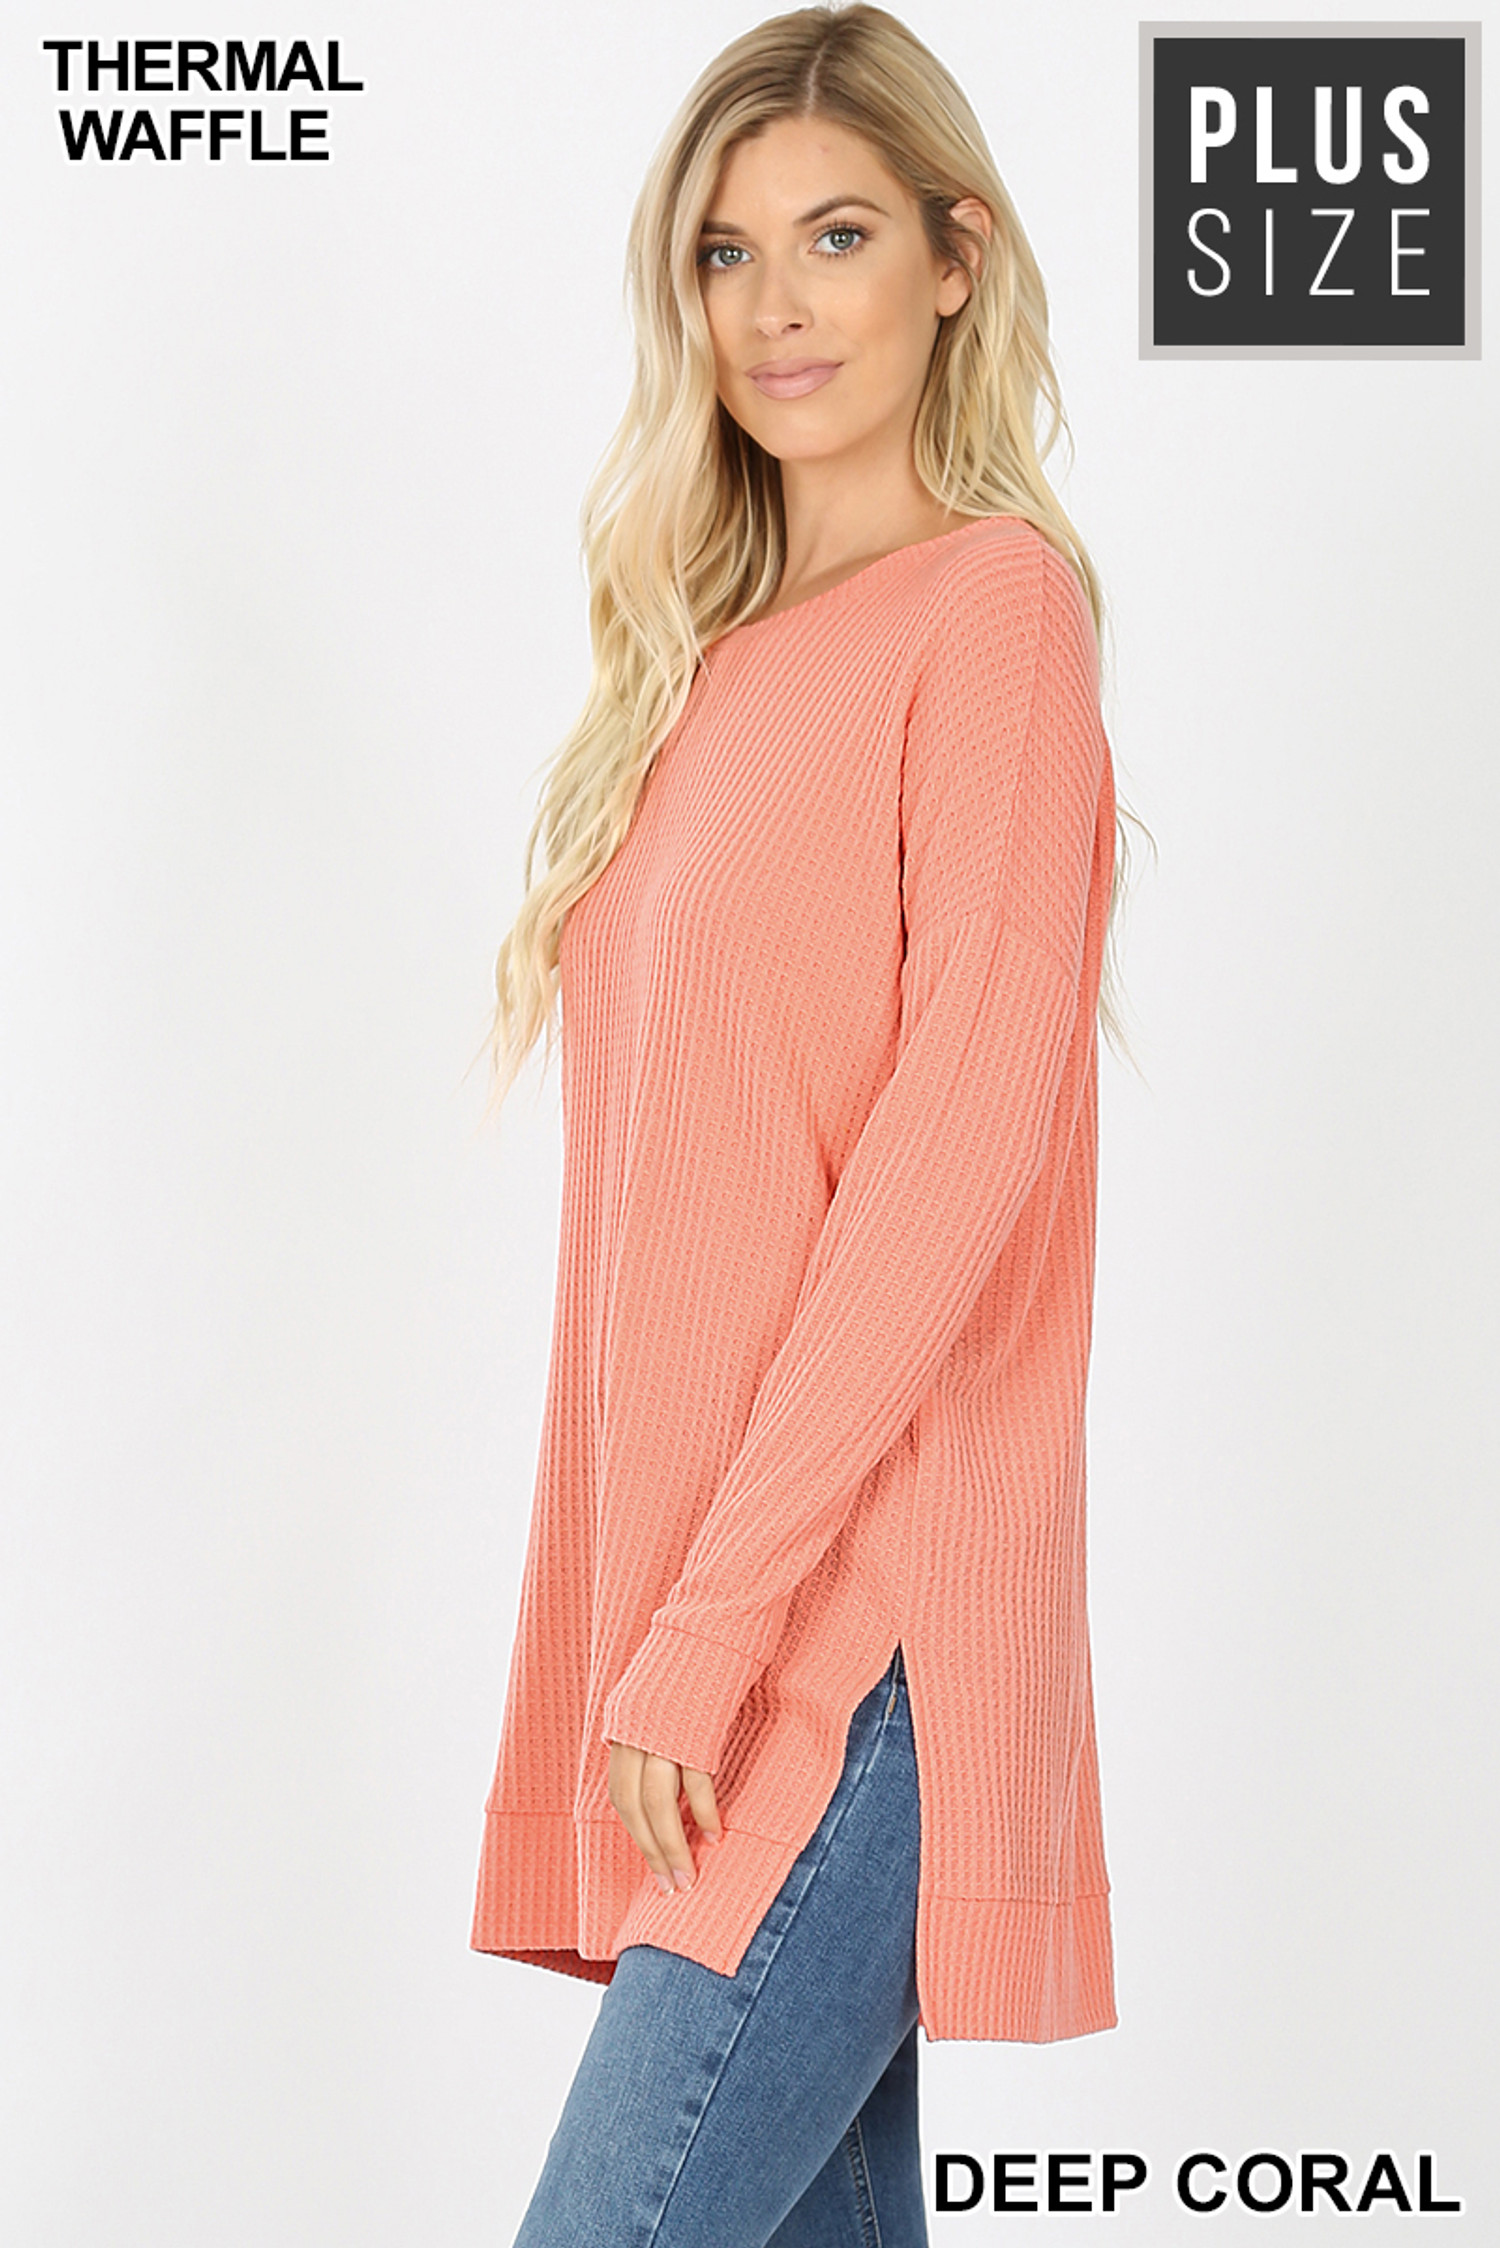 Left side image of Deep Coral Brushed Thermal Waffle Knit Round Neck Plus Size Sweater